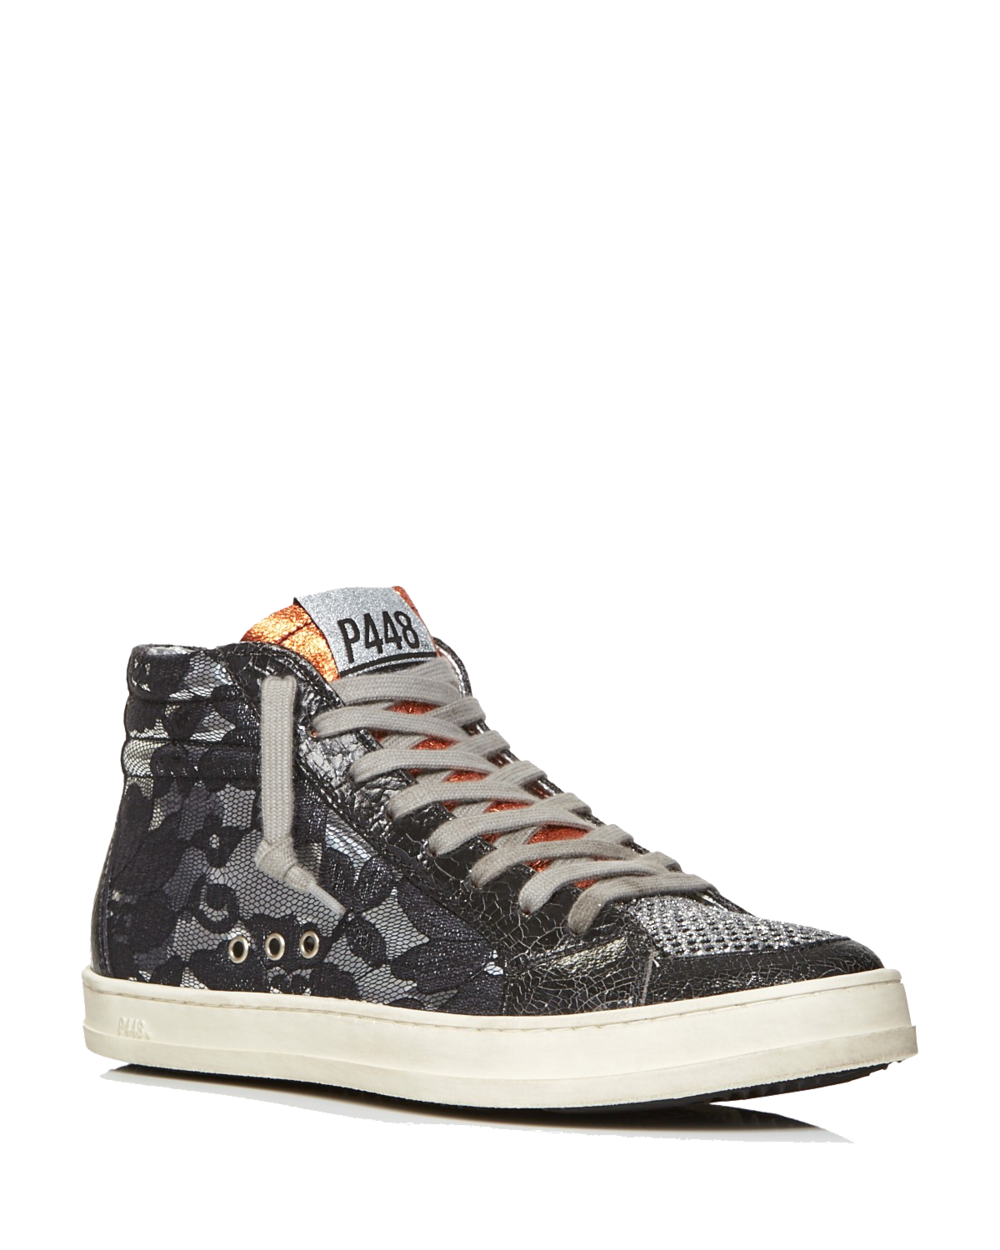 p488 black lace high top sneakers